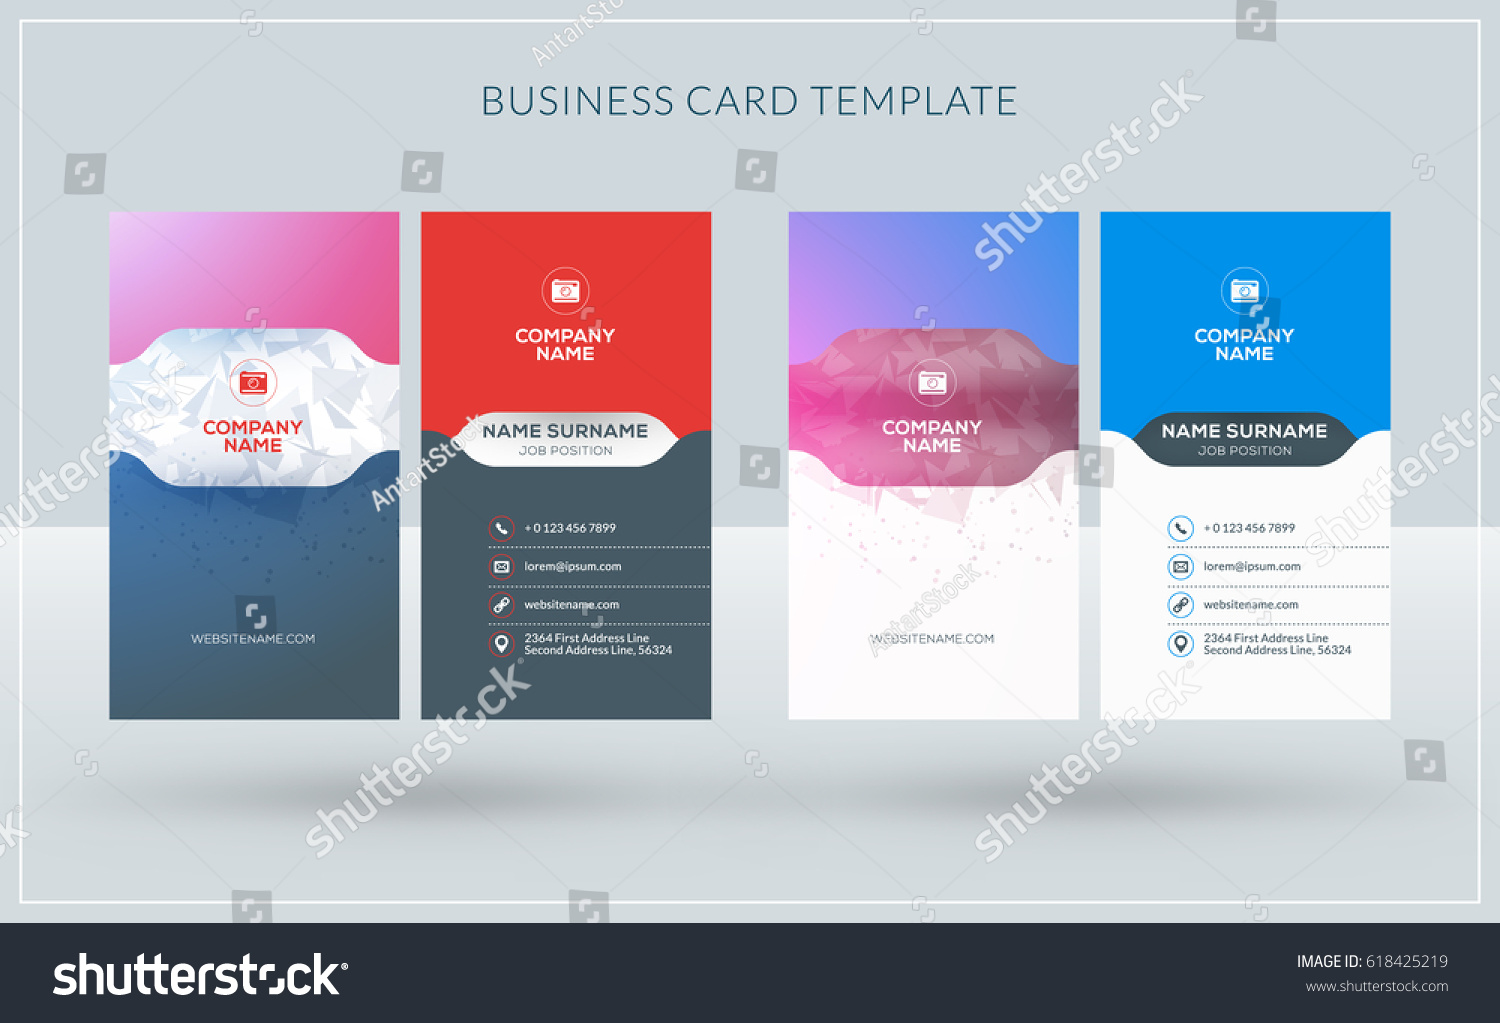 vertical doublesided creative business card templates stock vector 618425219 shutterstock. Black Bedroom Furniture Sets. Home Design Ideas